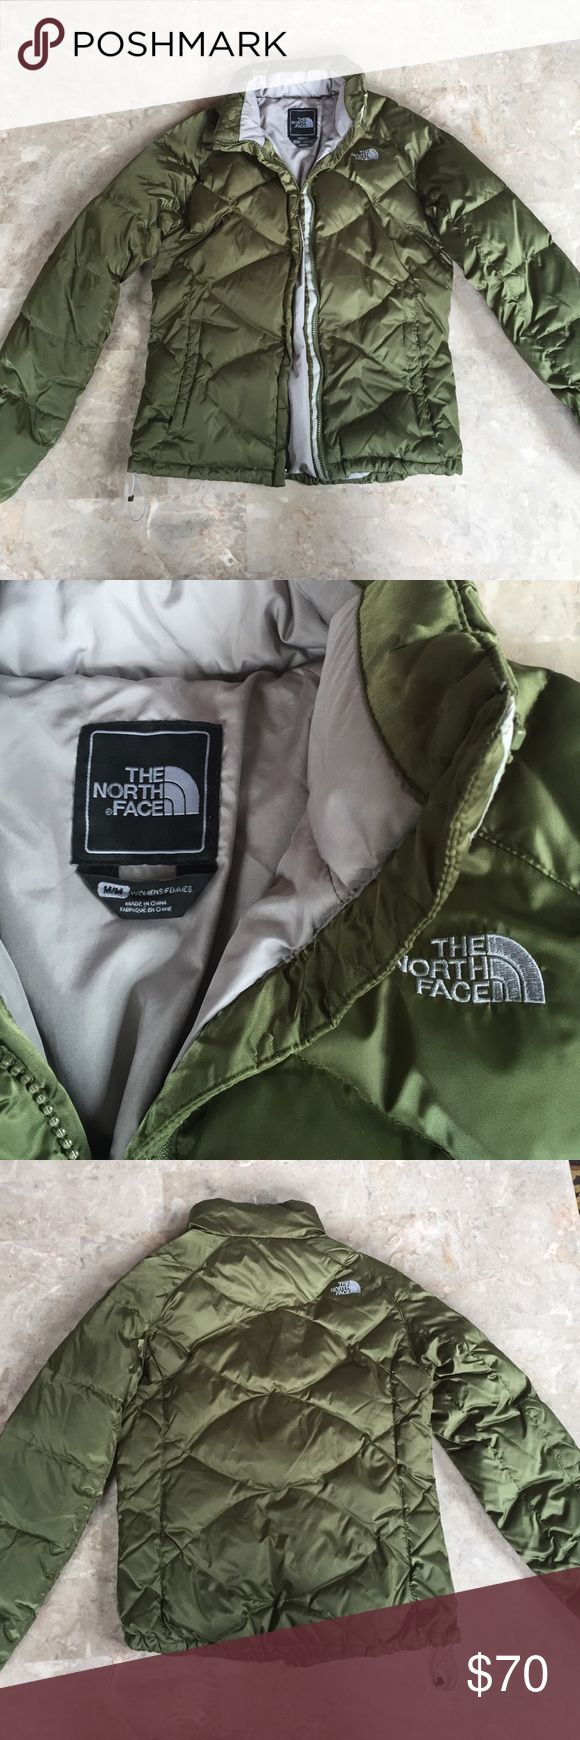 The North Face olive green puffer jacket This is in great condition! A beautiful shiny olive green color. 550 series, very durable and warm. Size is women's medium and fits true to size. No stains or holes. The North Face Jackets & Coats Puffers